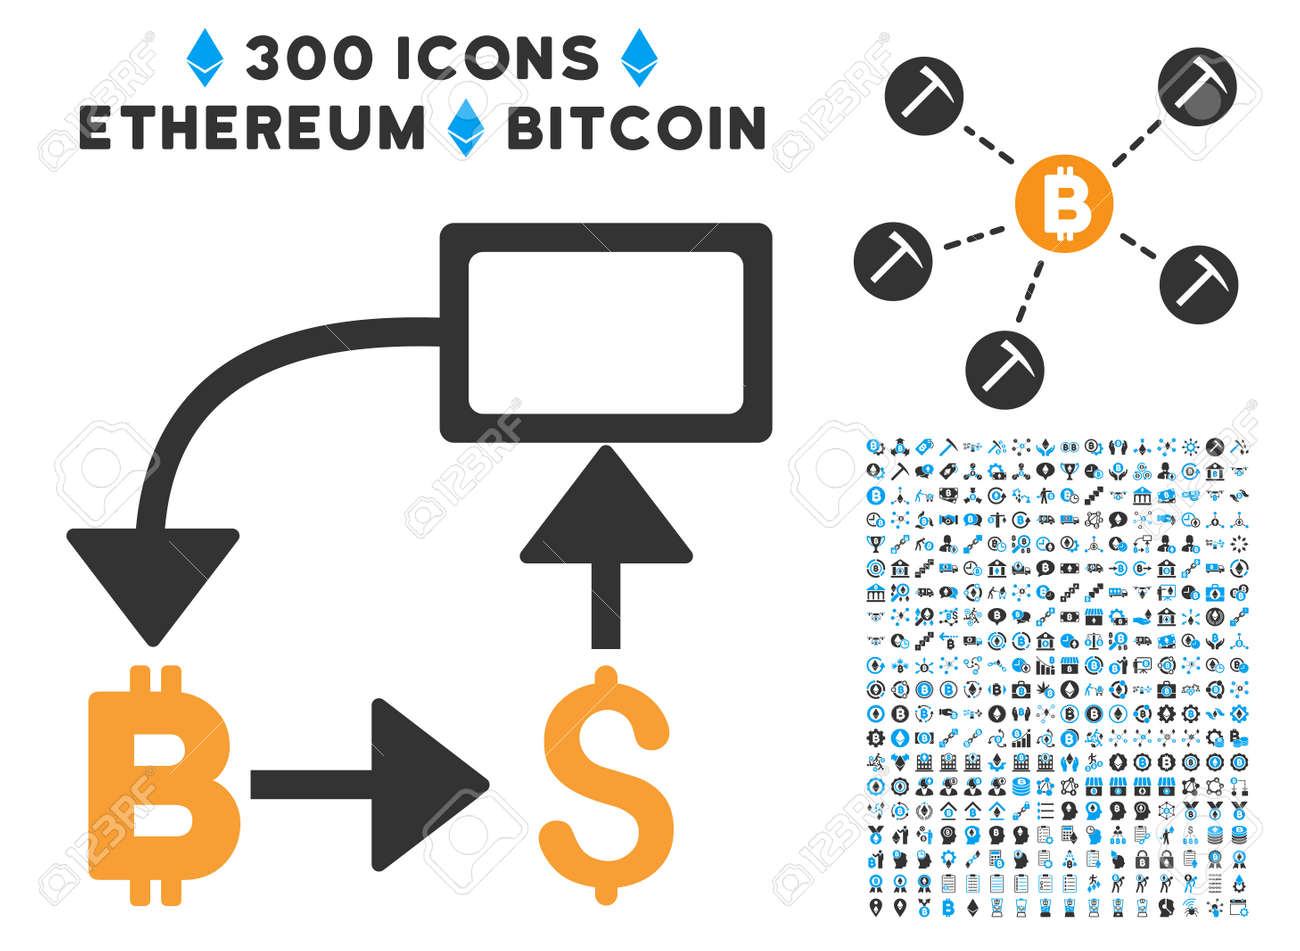 Bitcoin dollar flow chart pictograph with 300 blockchain bitcoin dollar flow chart pictograph with 300 blockchain cryptocurrency ethereum smart contract pictograms nvjuhfo Choice Image